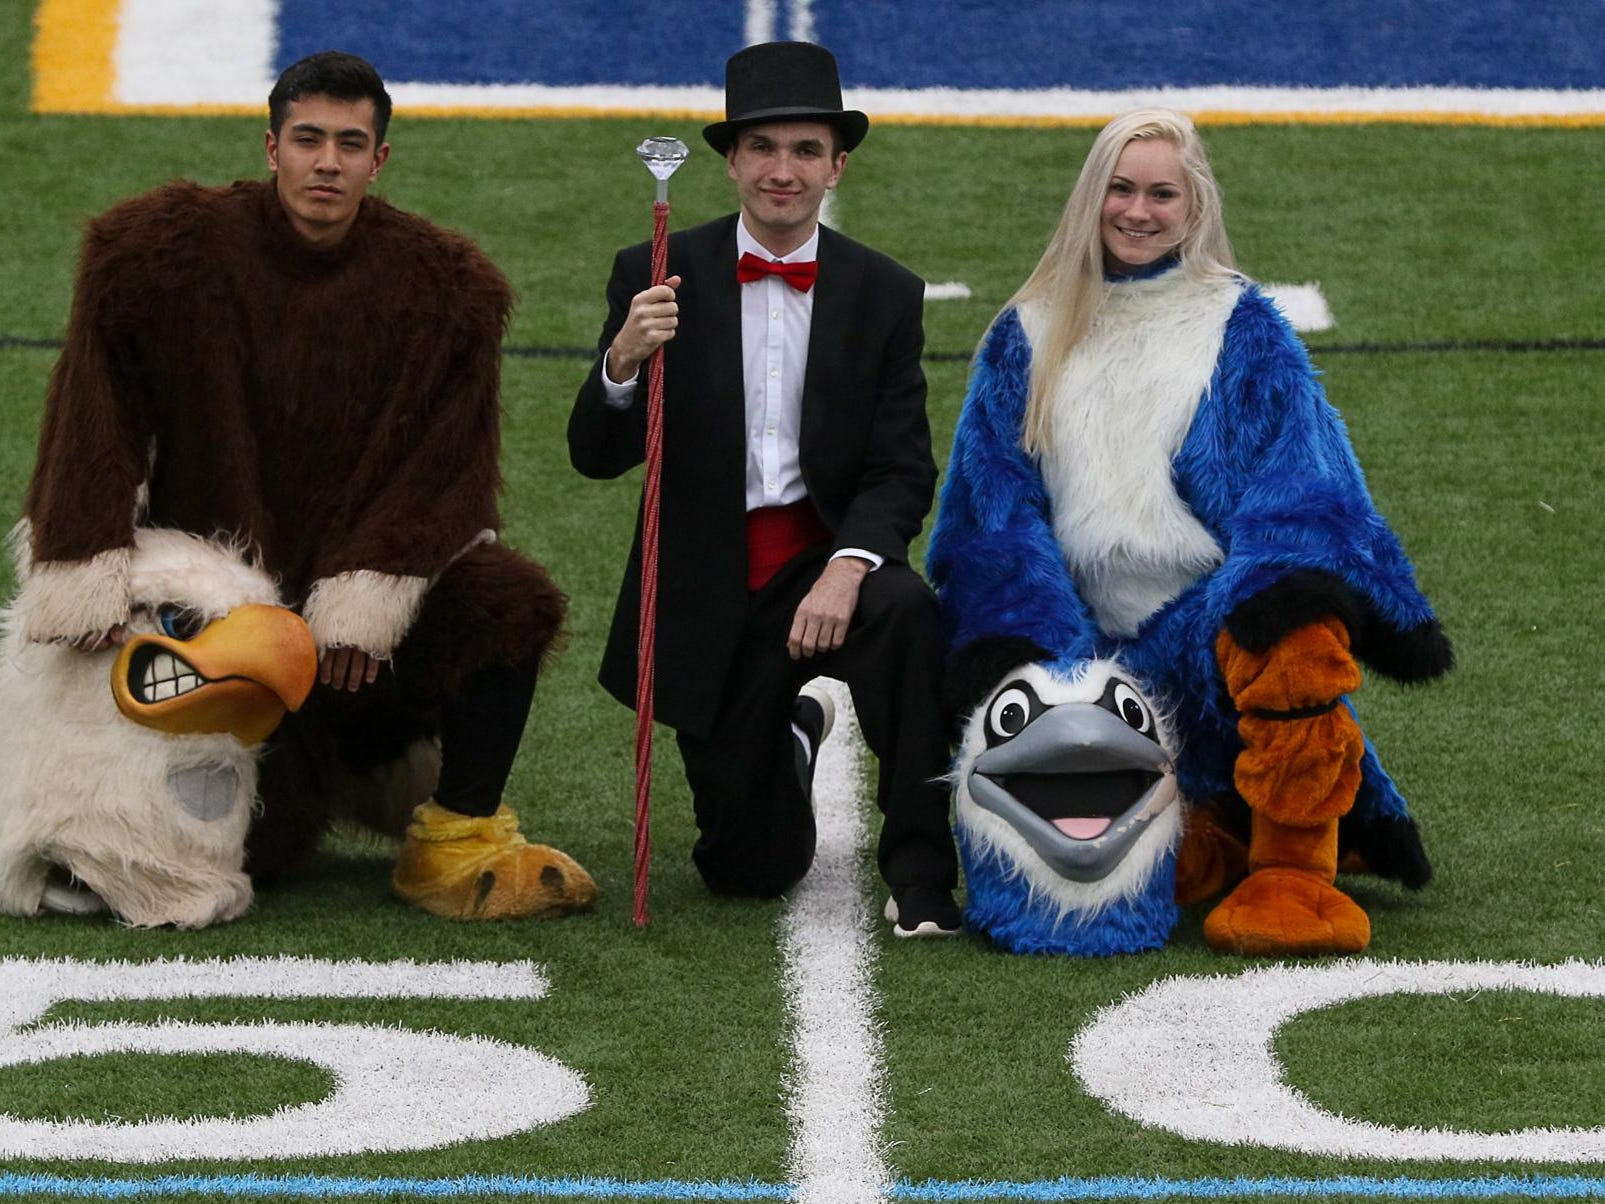 Competition transcends the football field as high school mascots from the Greater Middlesex Conference battle in the MyCentralJersey.com Snapple Bowl's inaugural Mascot Challenge. From left, Avesto Yusufiy, the Edison Eagle; Johnathon O'Halloran, the Woodbridge Barron, and Jenna Loutes, Boomer the Middlesex Blue Jay, pose in costume.